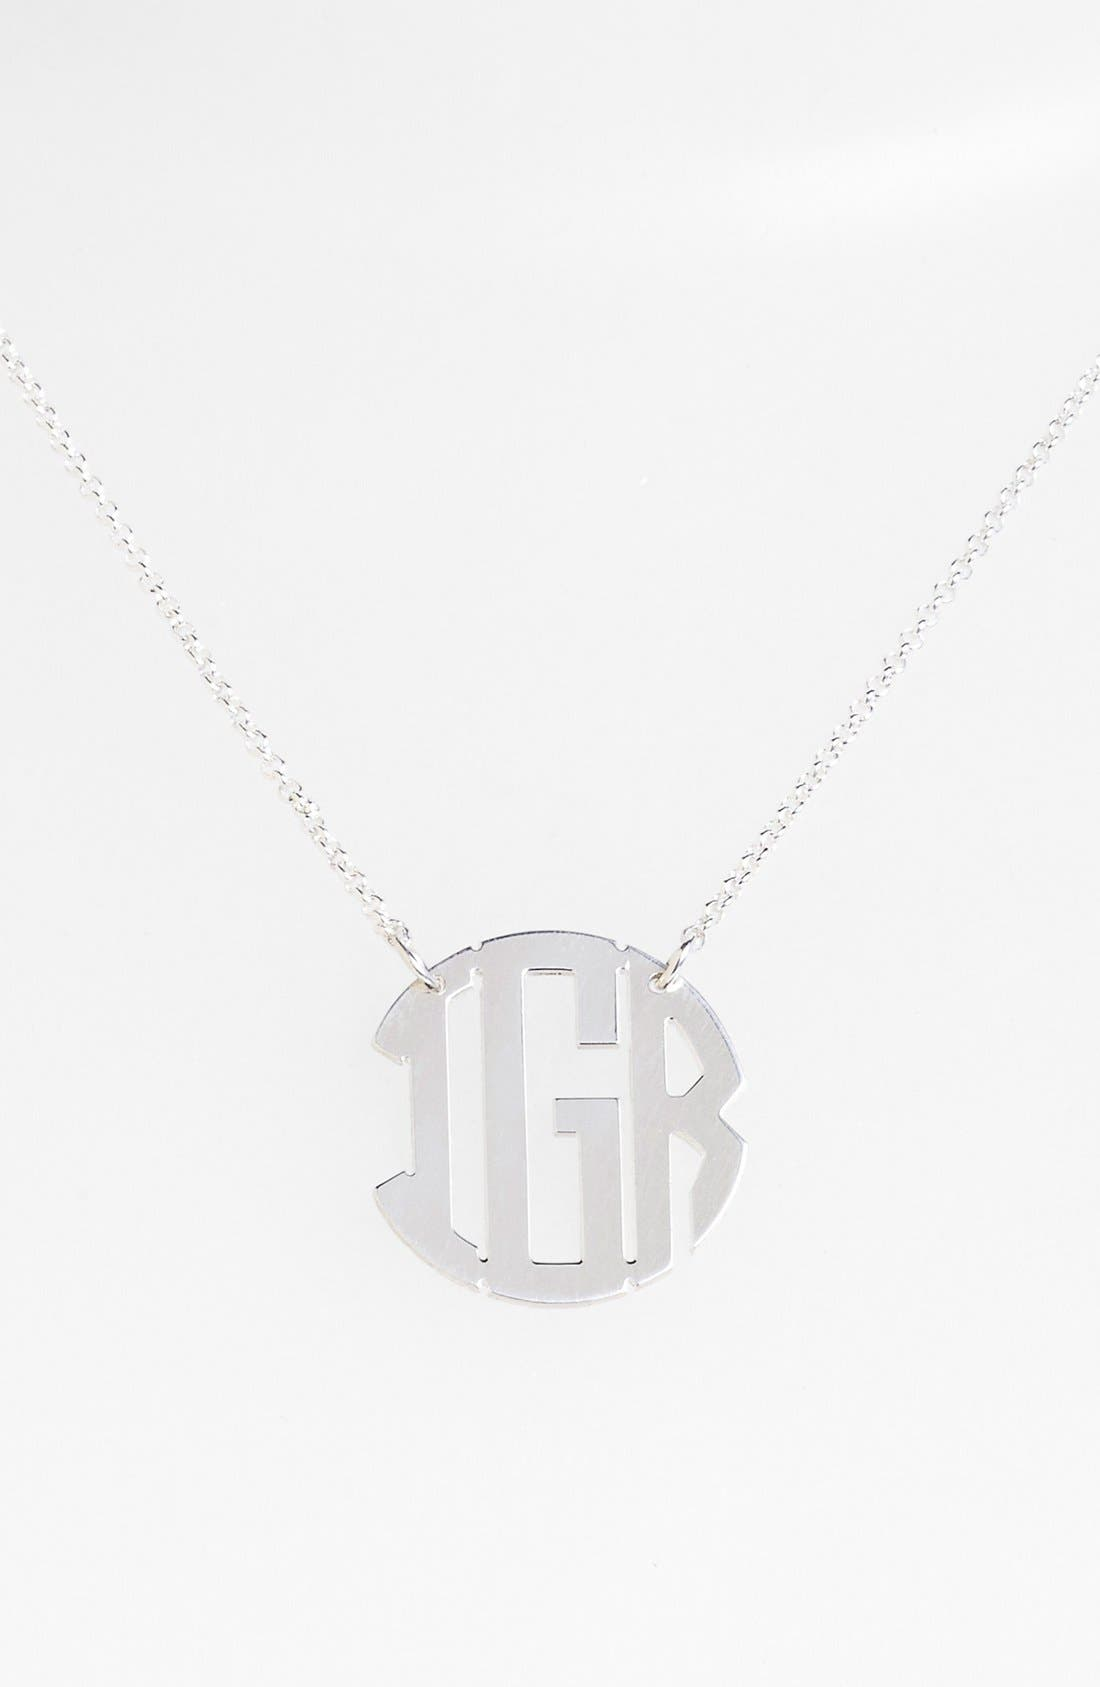 Personalized 3-Initial Block Monogram Necklace,                         Main,                         color, 040